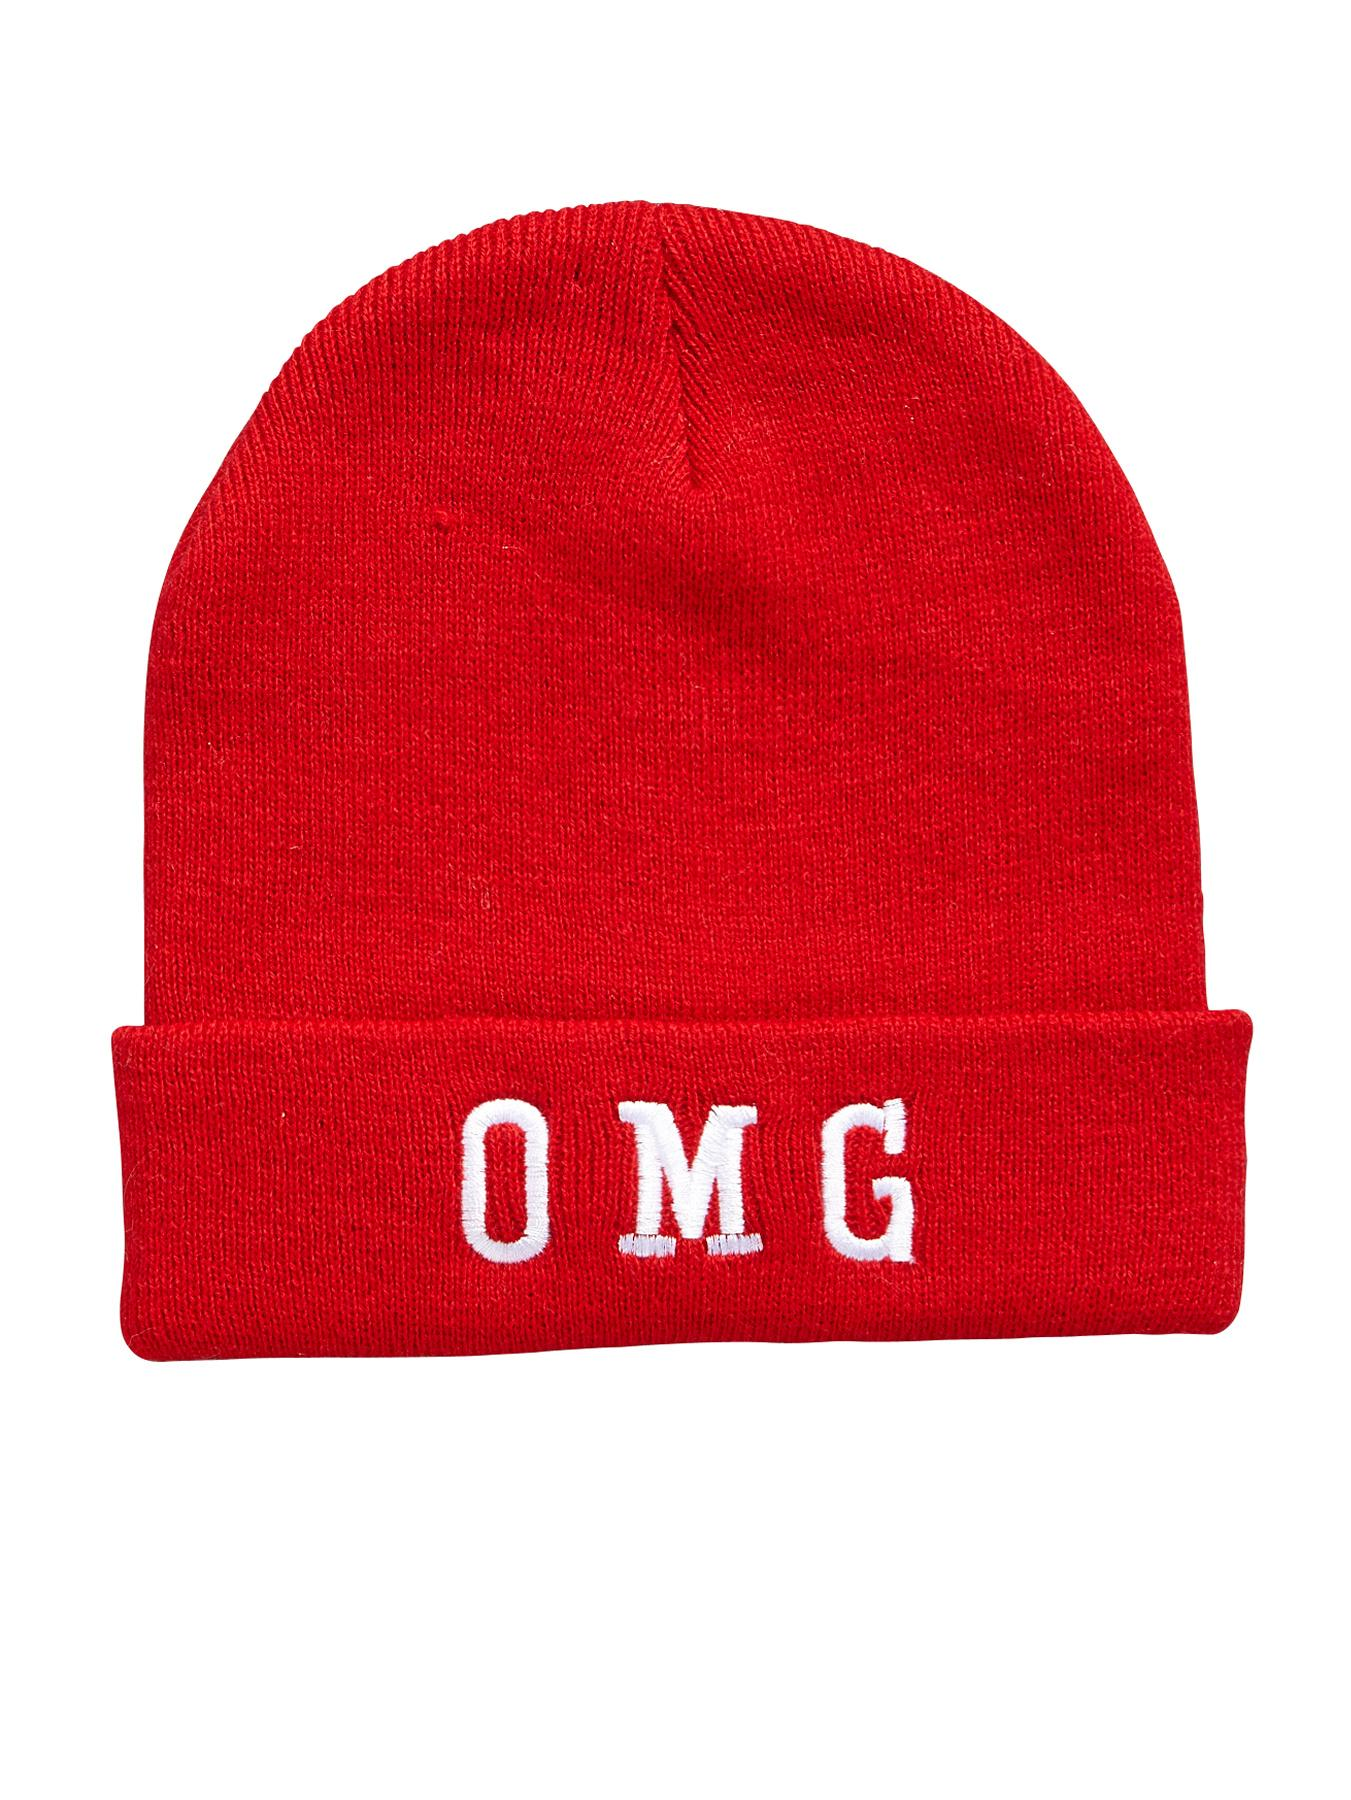 OMG Beanie, Red at Littlewoods